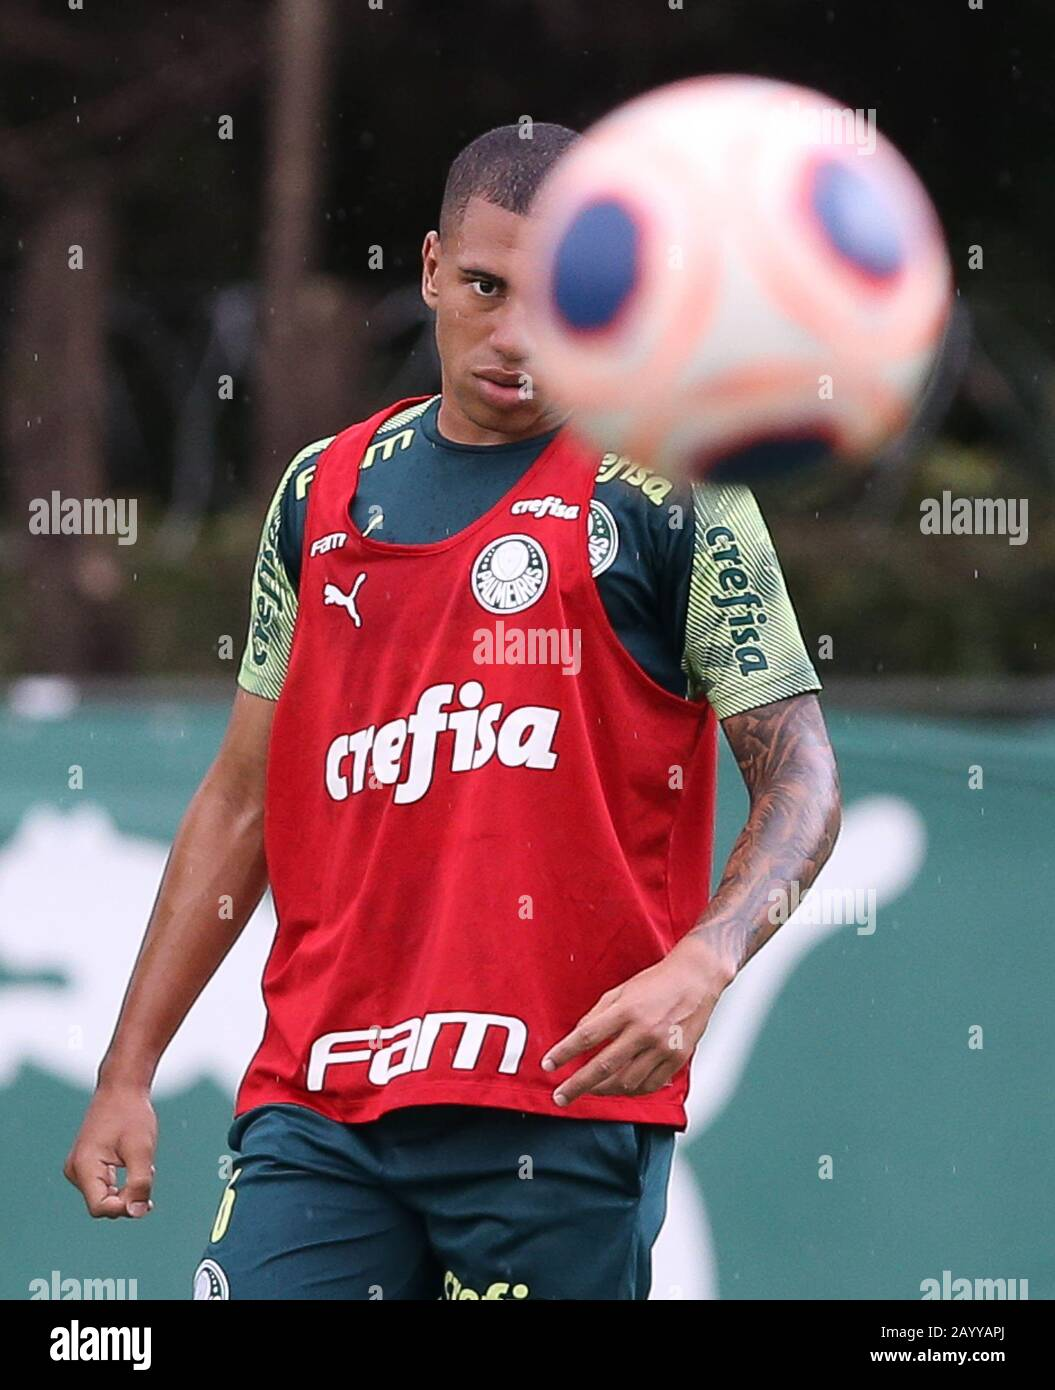 Sao Paulo Brazil 17th Feb 2020 Player Lucas Esteves From Se Palmeiras During Training At The Football Academy Credit Foto Arena Ltda Alamy Live News Stock Photo Alamy